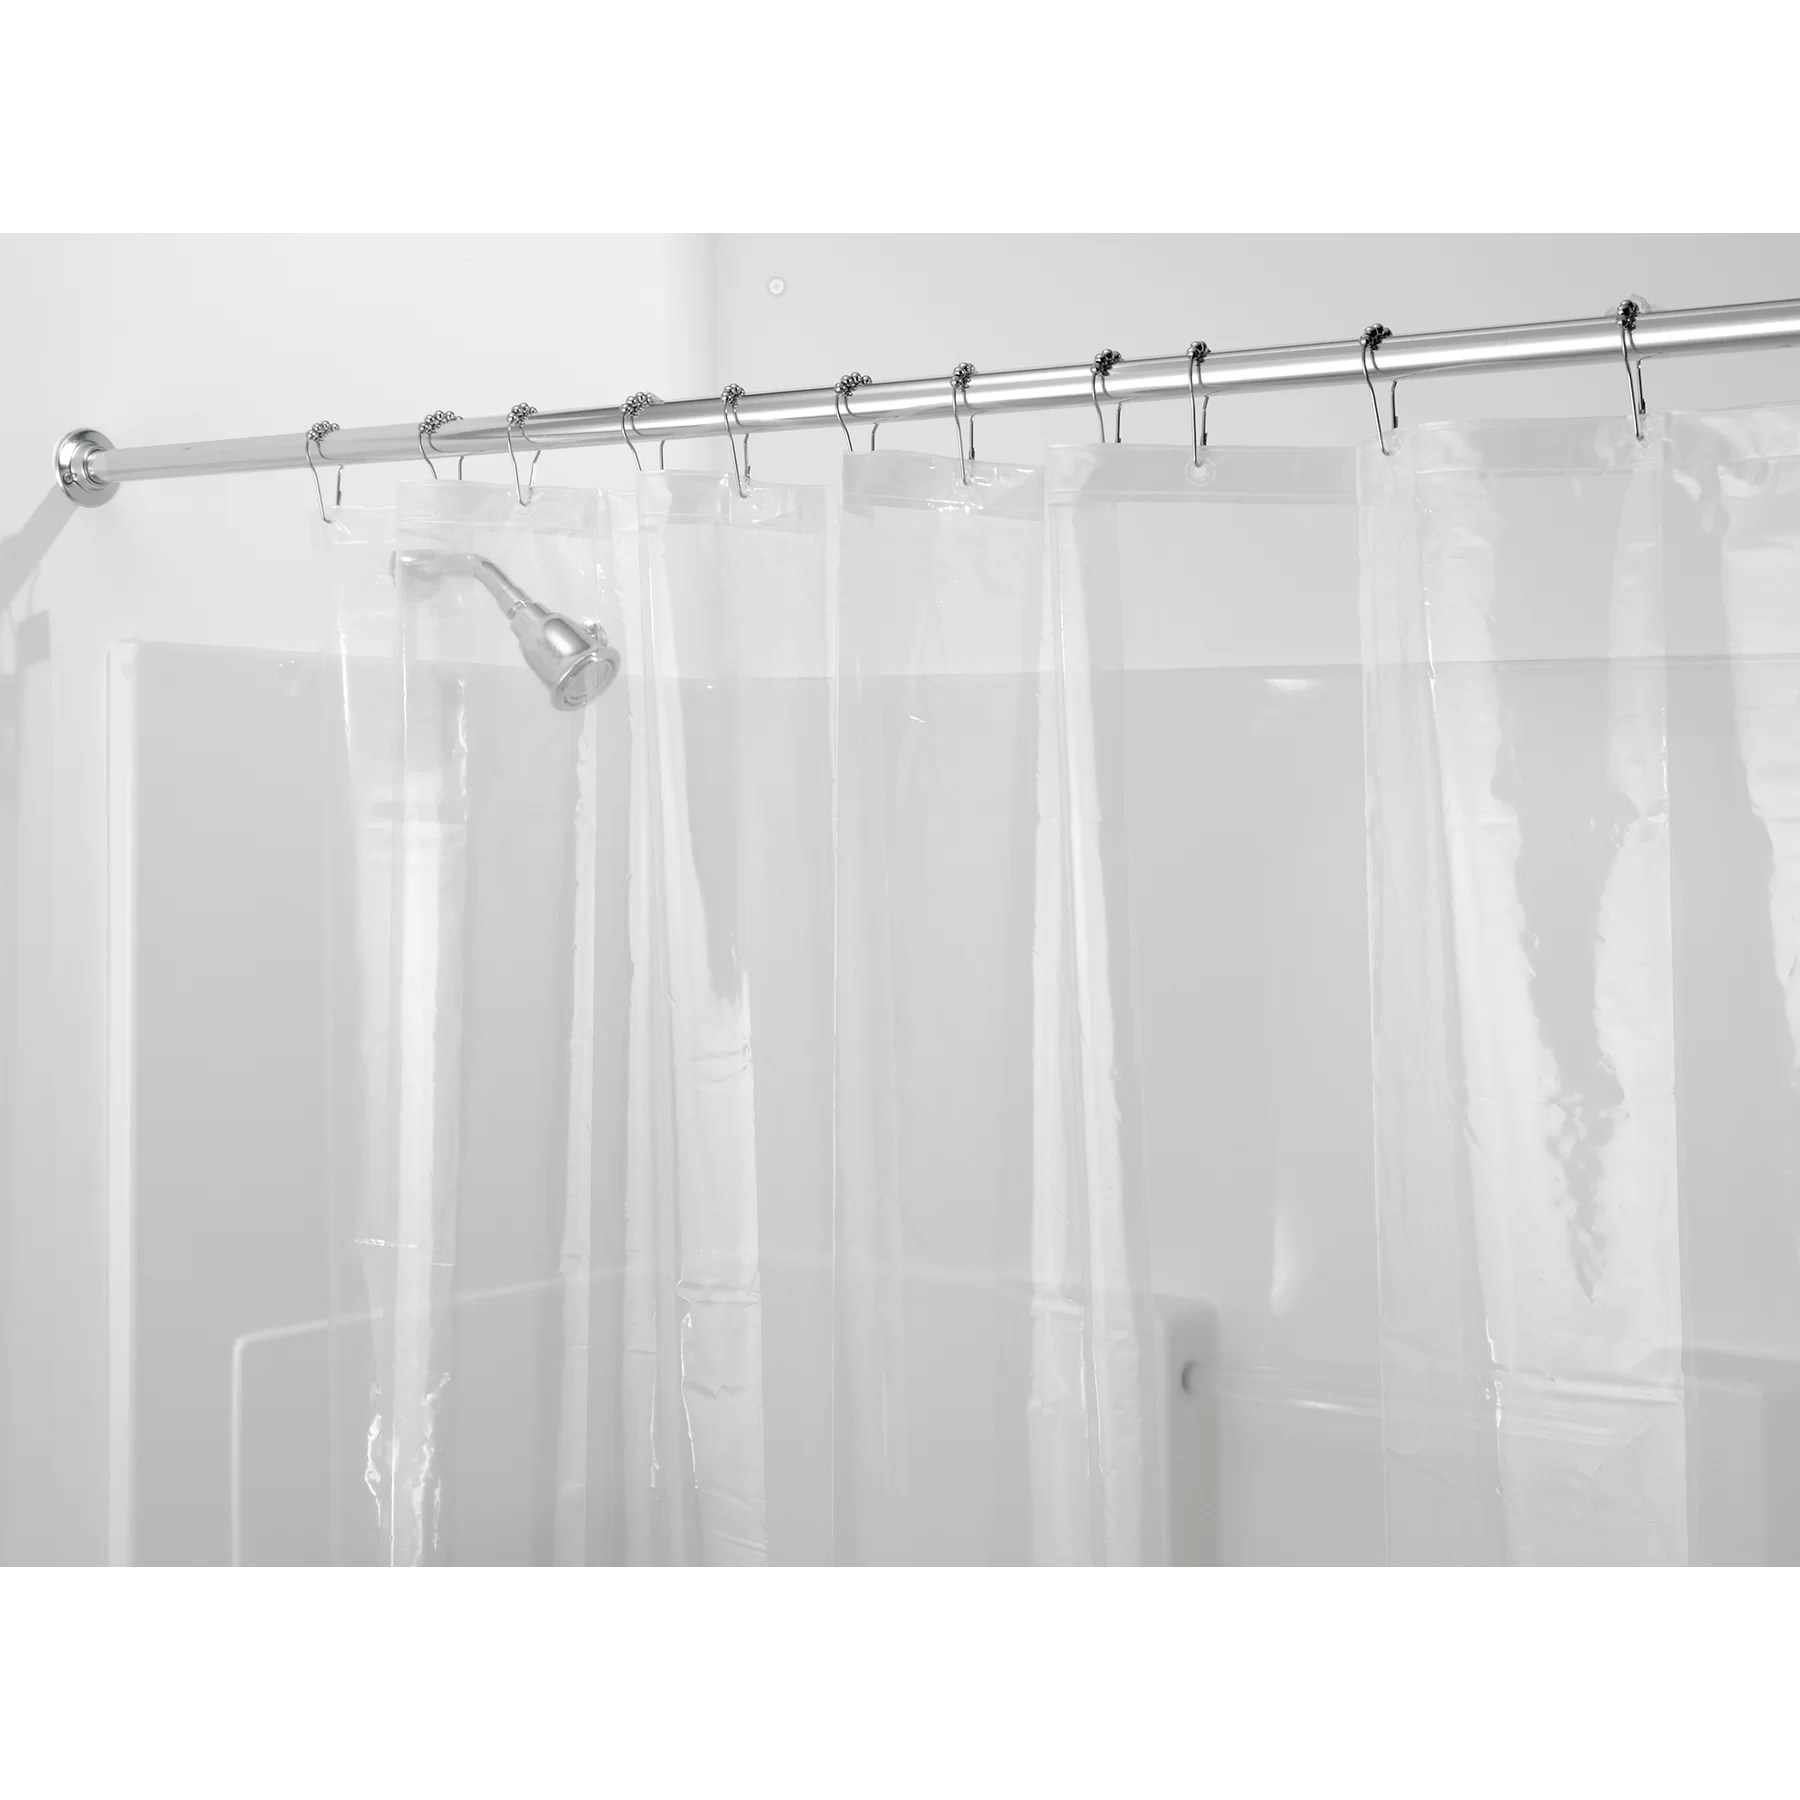 Symple Stuff Peva Stall Shower Curtain Liner  Reviews